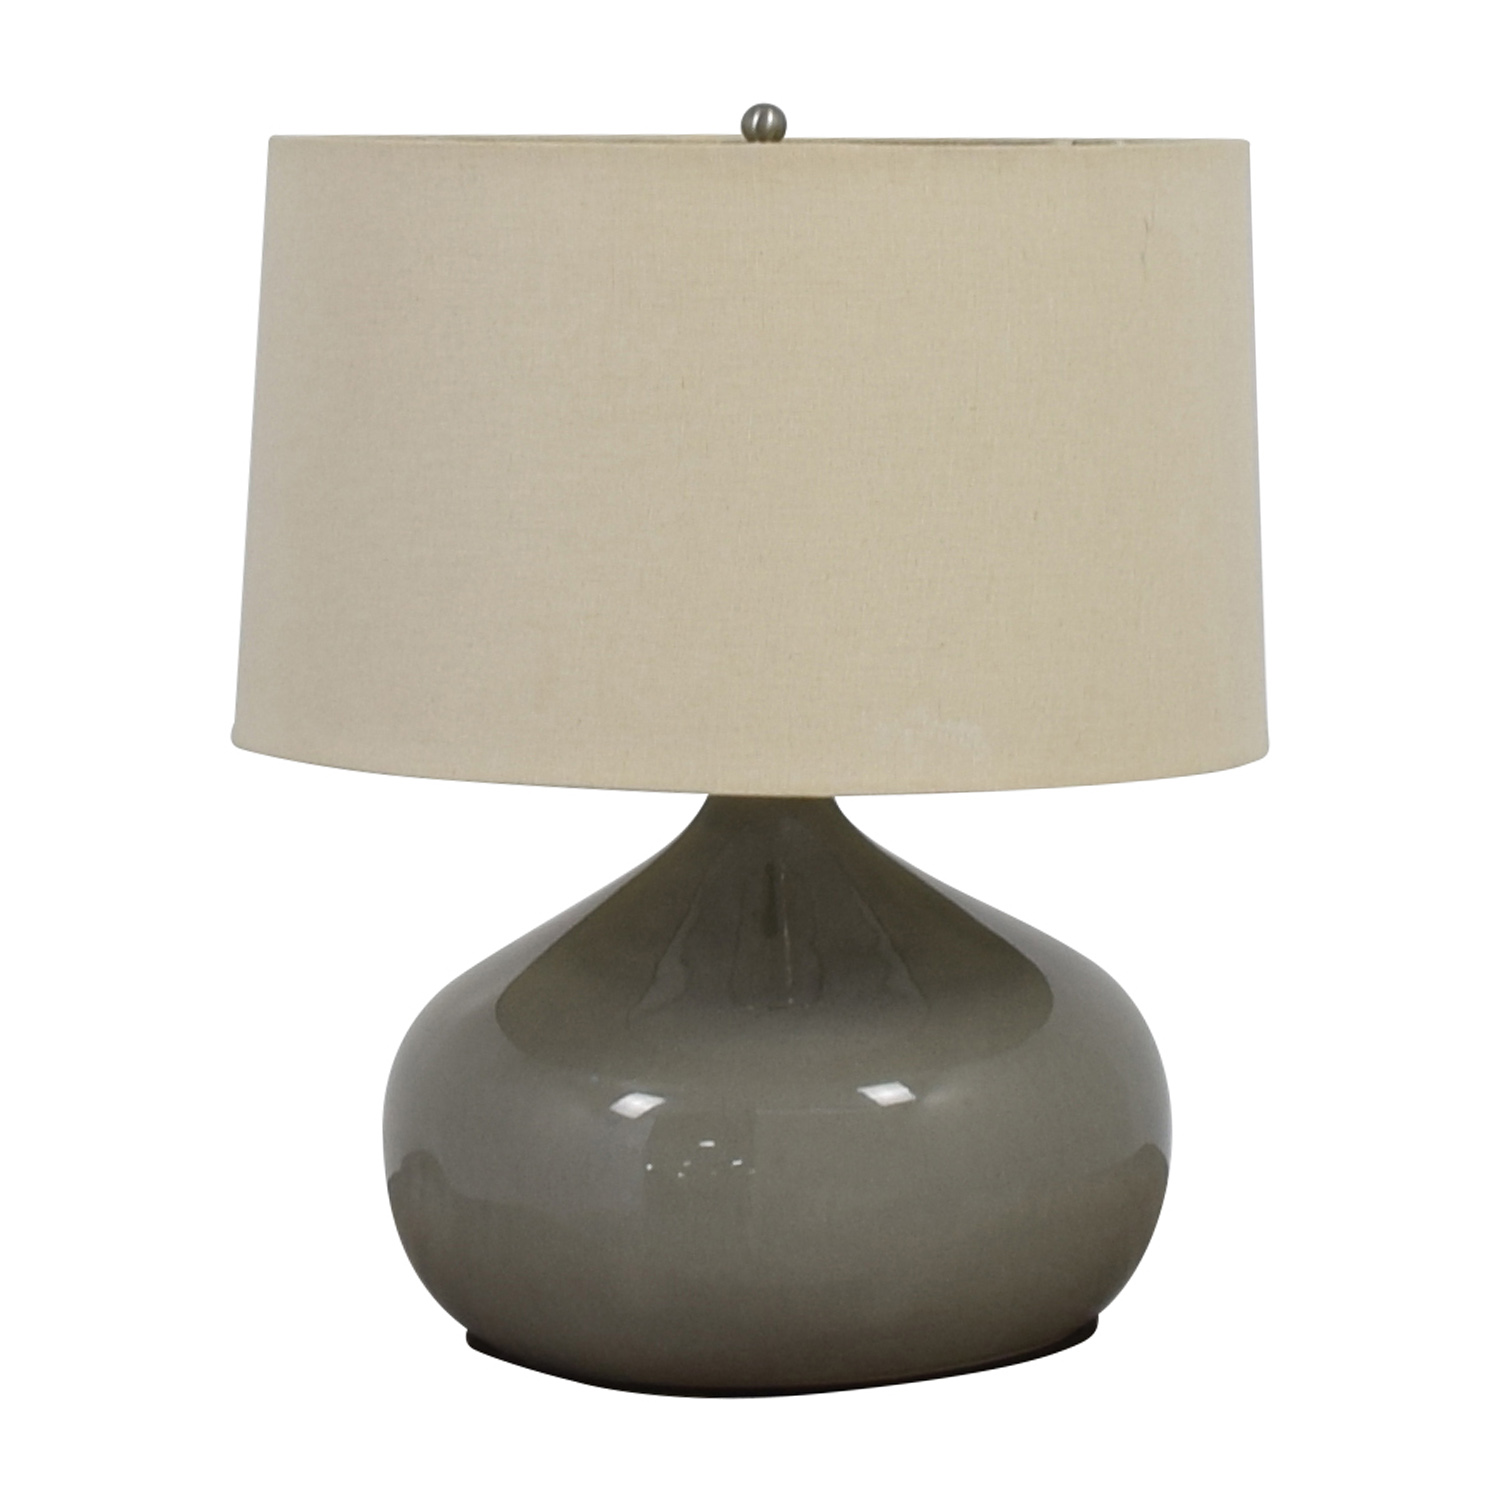 shop Pottery Barn Round Grey Ceramic Table Lamp Pottery Barn Sofas